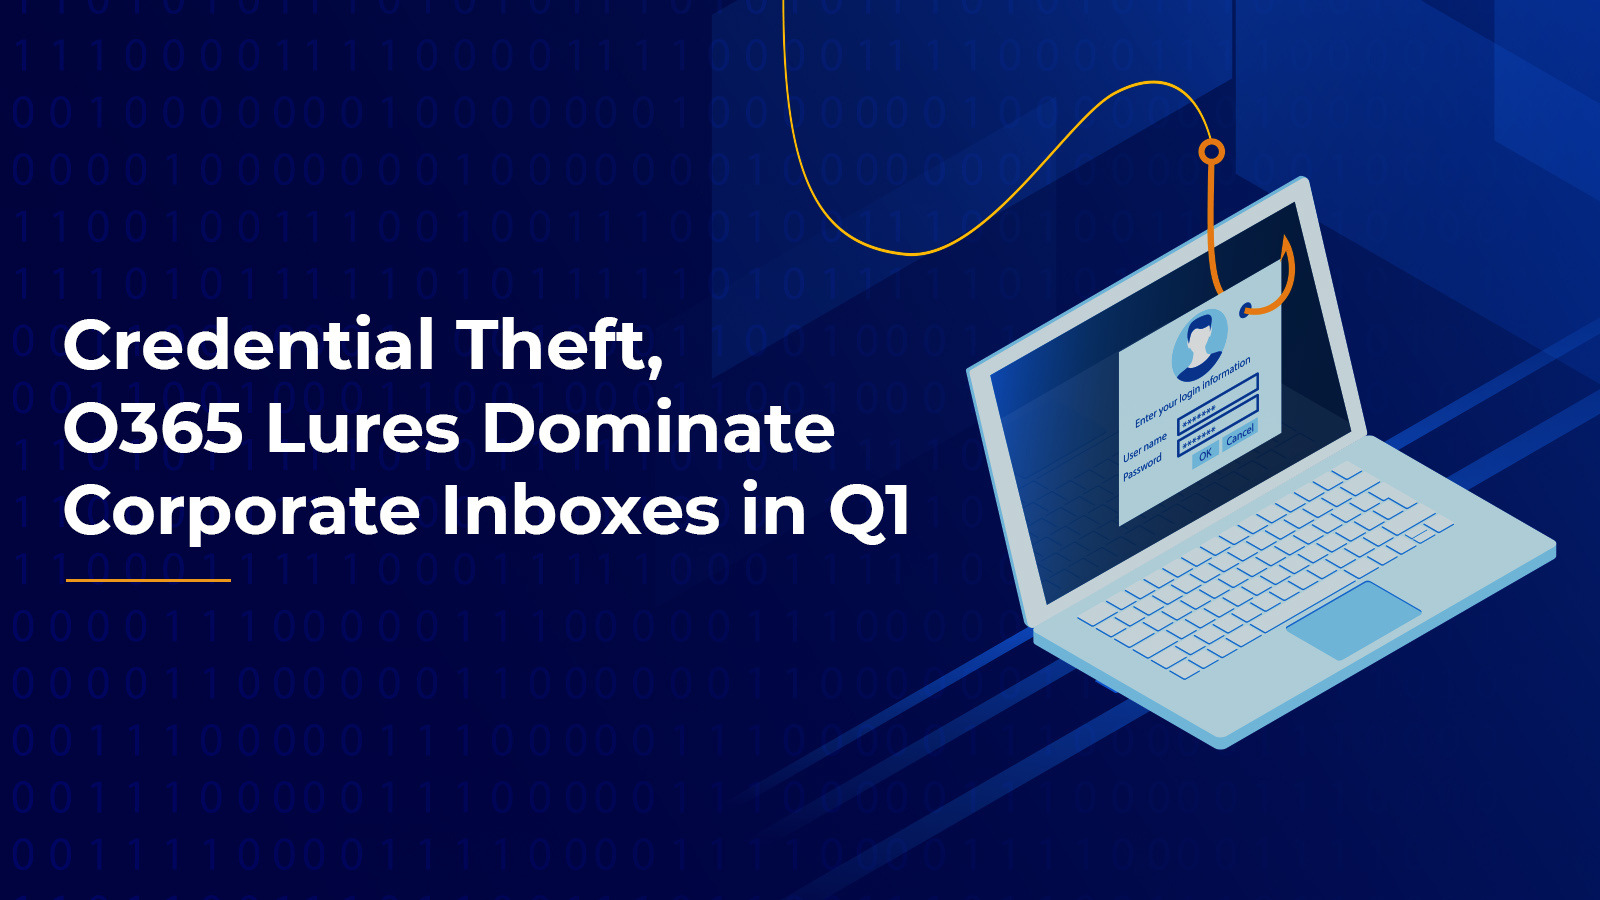 Credential Theft, O365 Lures Dominate Corporate Inboxes in Q1